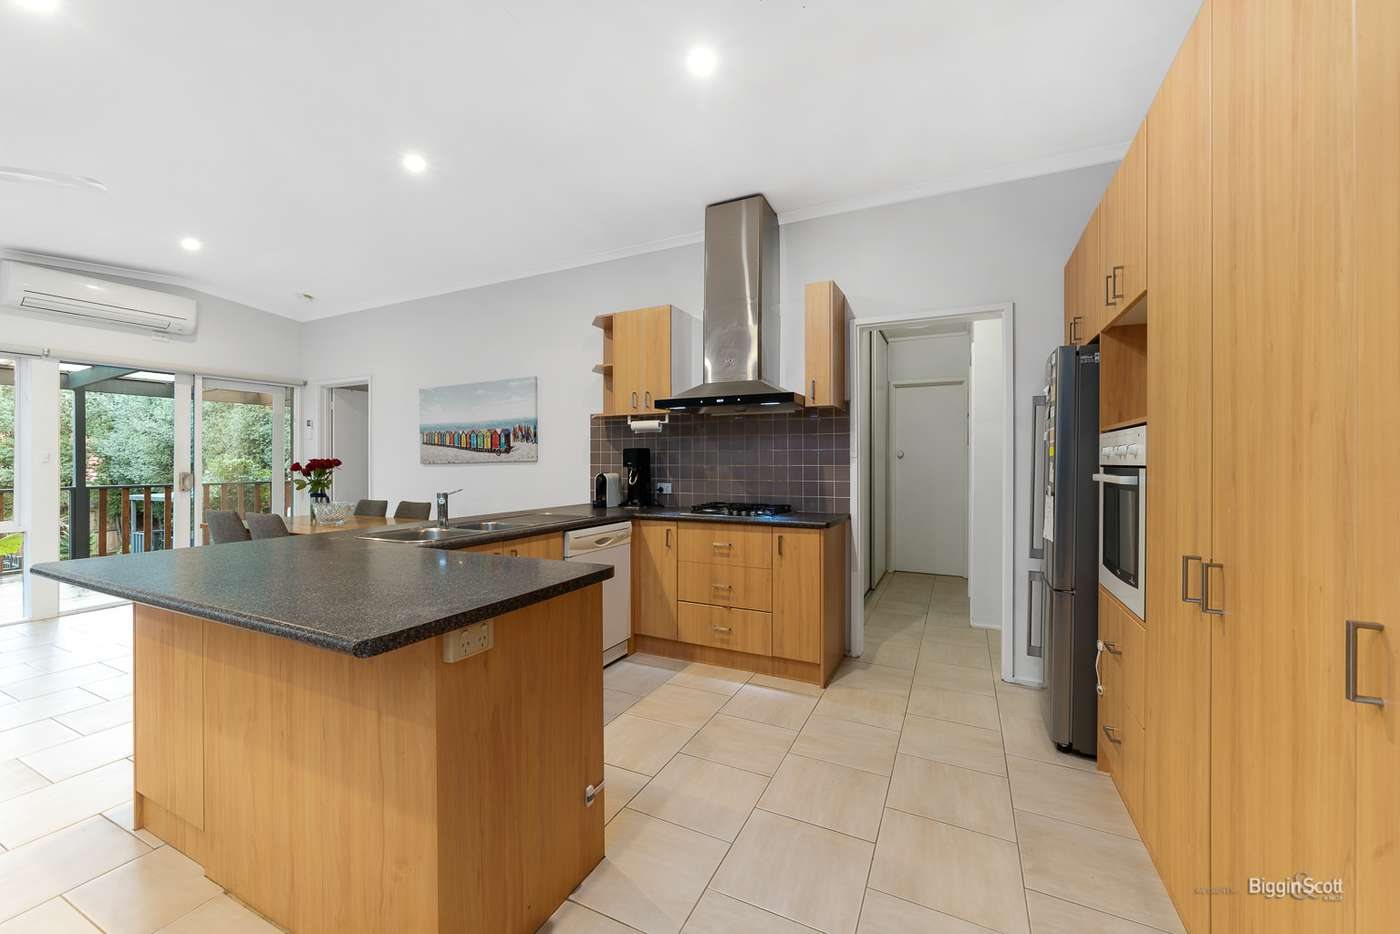 Seventh view of Homely house listing, 15 Bona Vista Road, Bayswater VIC 3153